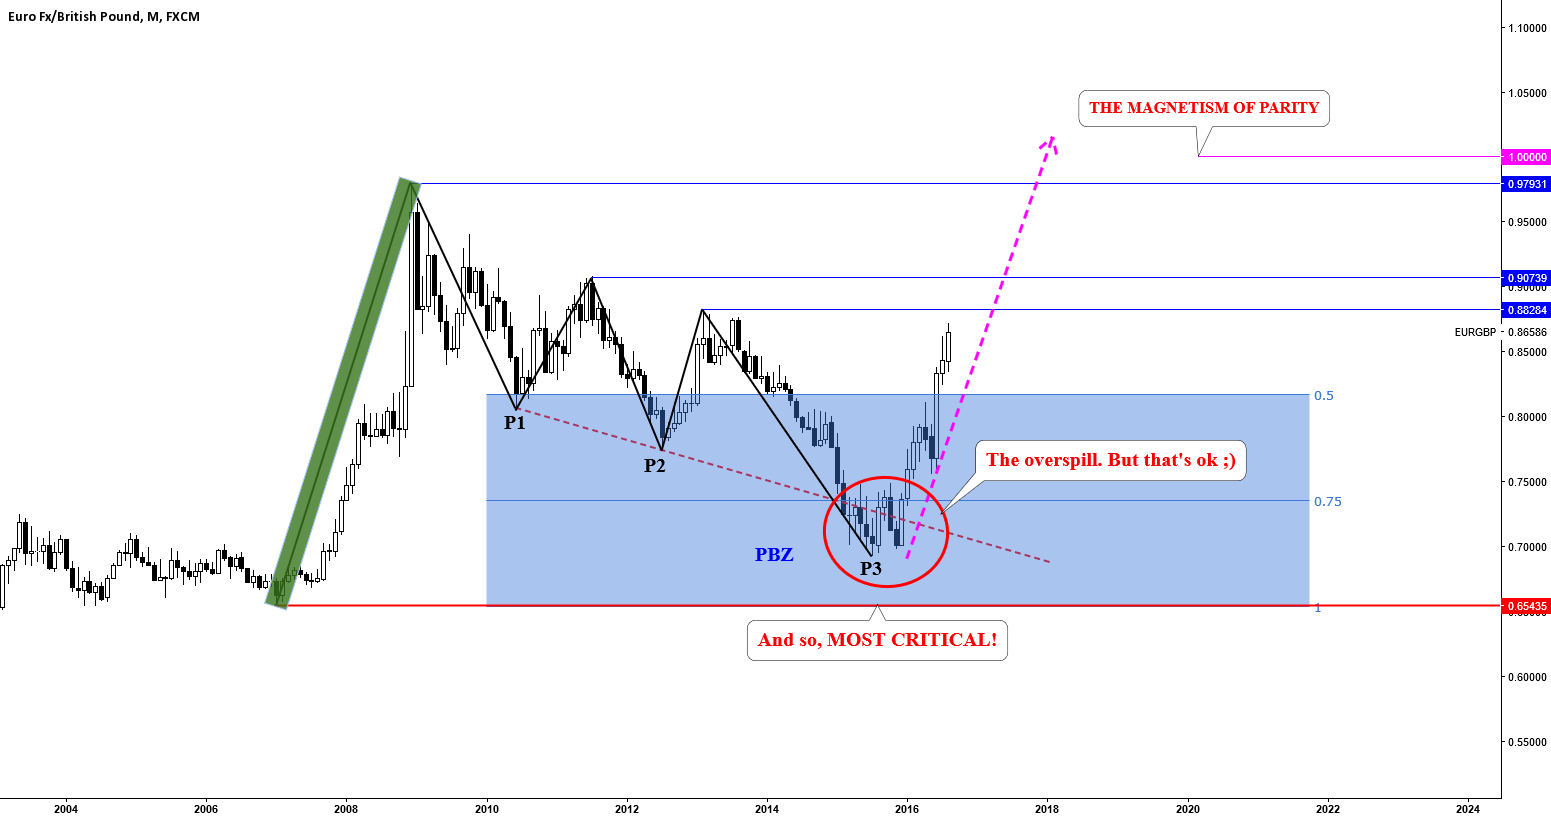 EURGBP: THE MAGNETISM OF PARITY